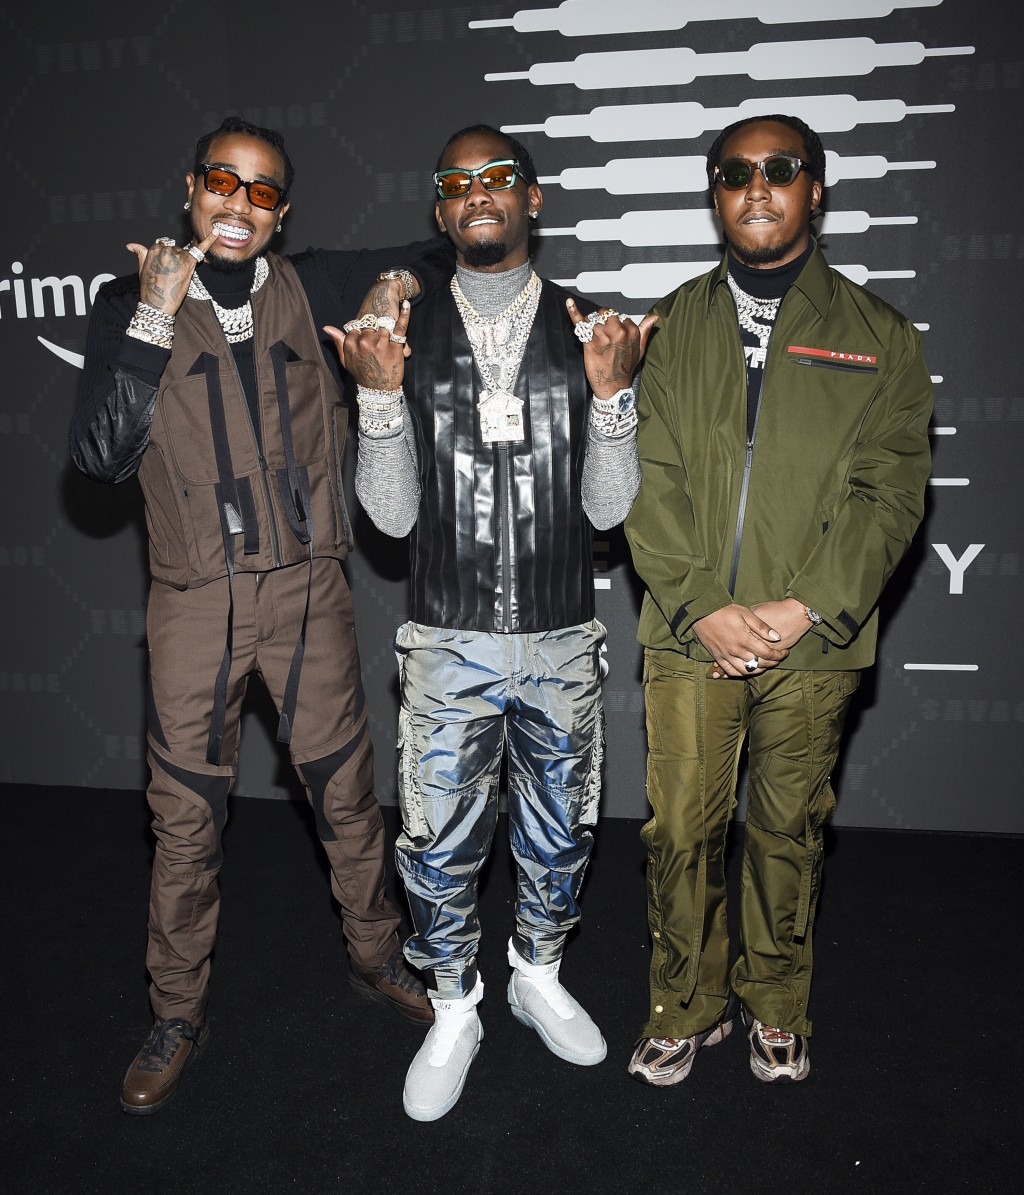 Quavo, Offset, and Takeoff of Migos attend the Spring/Summer 2020 Savage X Fenty show, presented by Amazon Prime, at the Barclays Center on Tuesday, S...